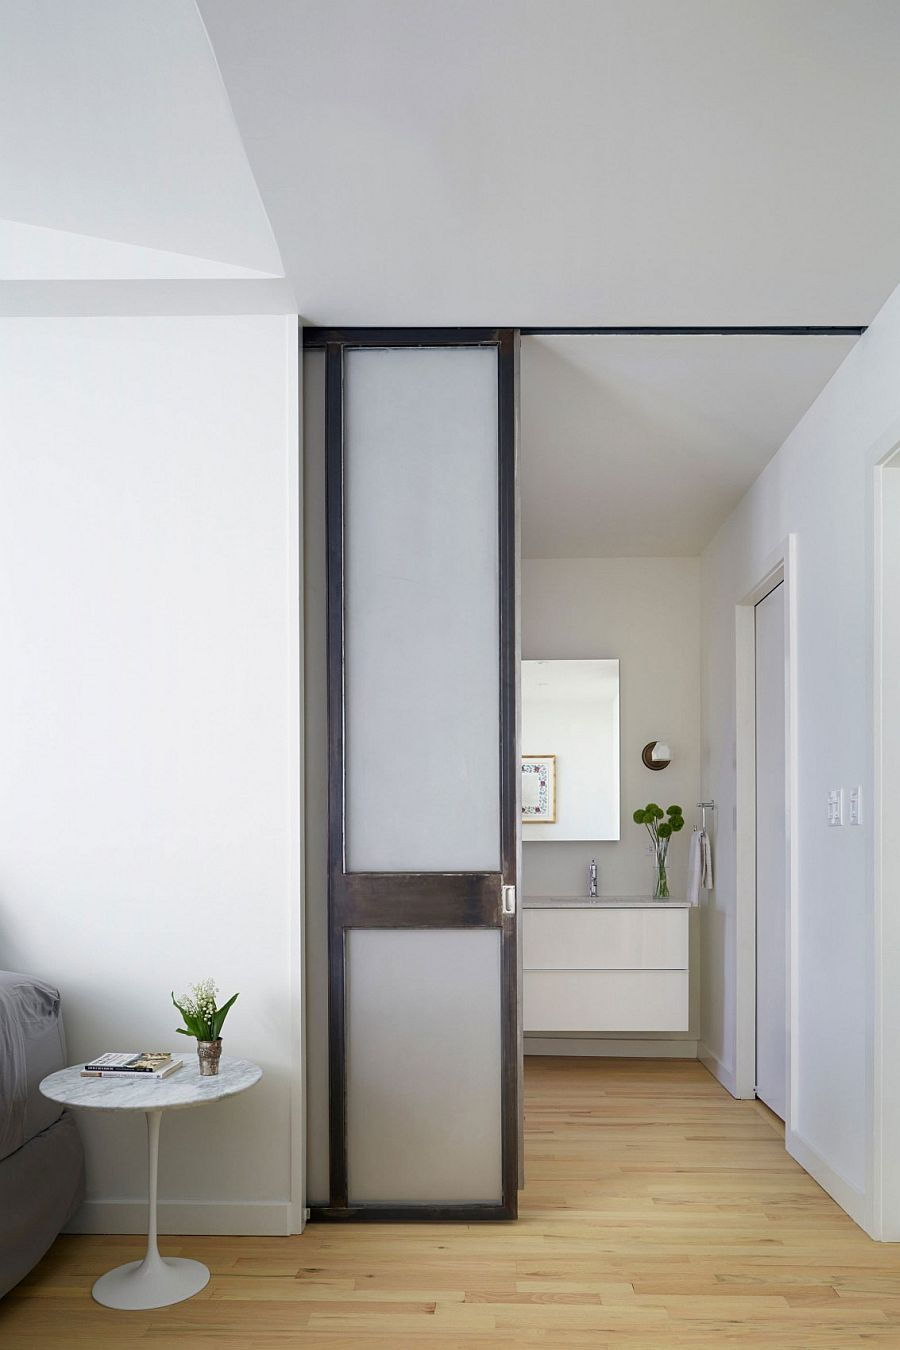 Sliding doors save up precious square footage